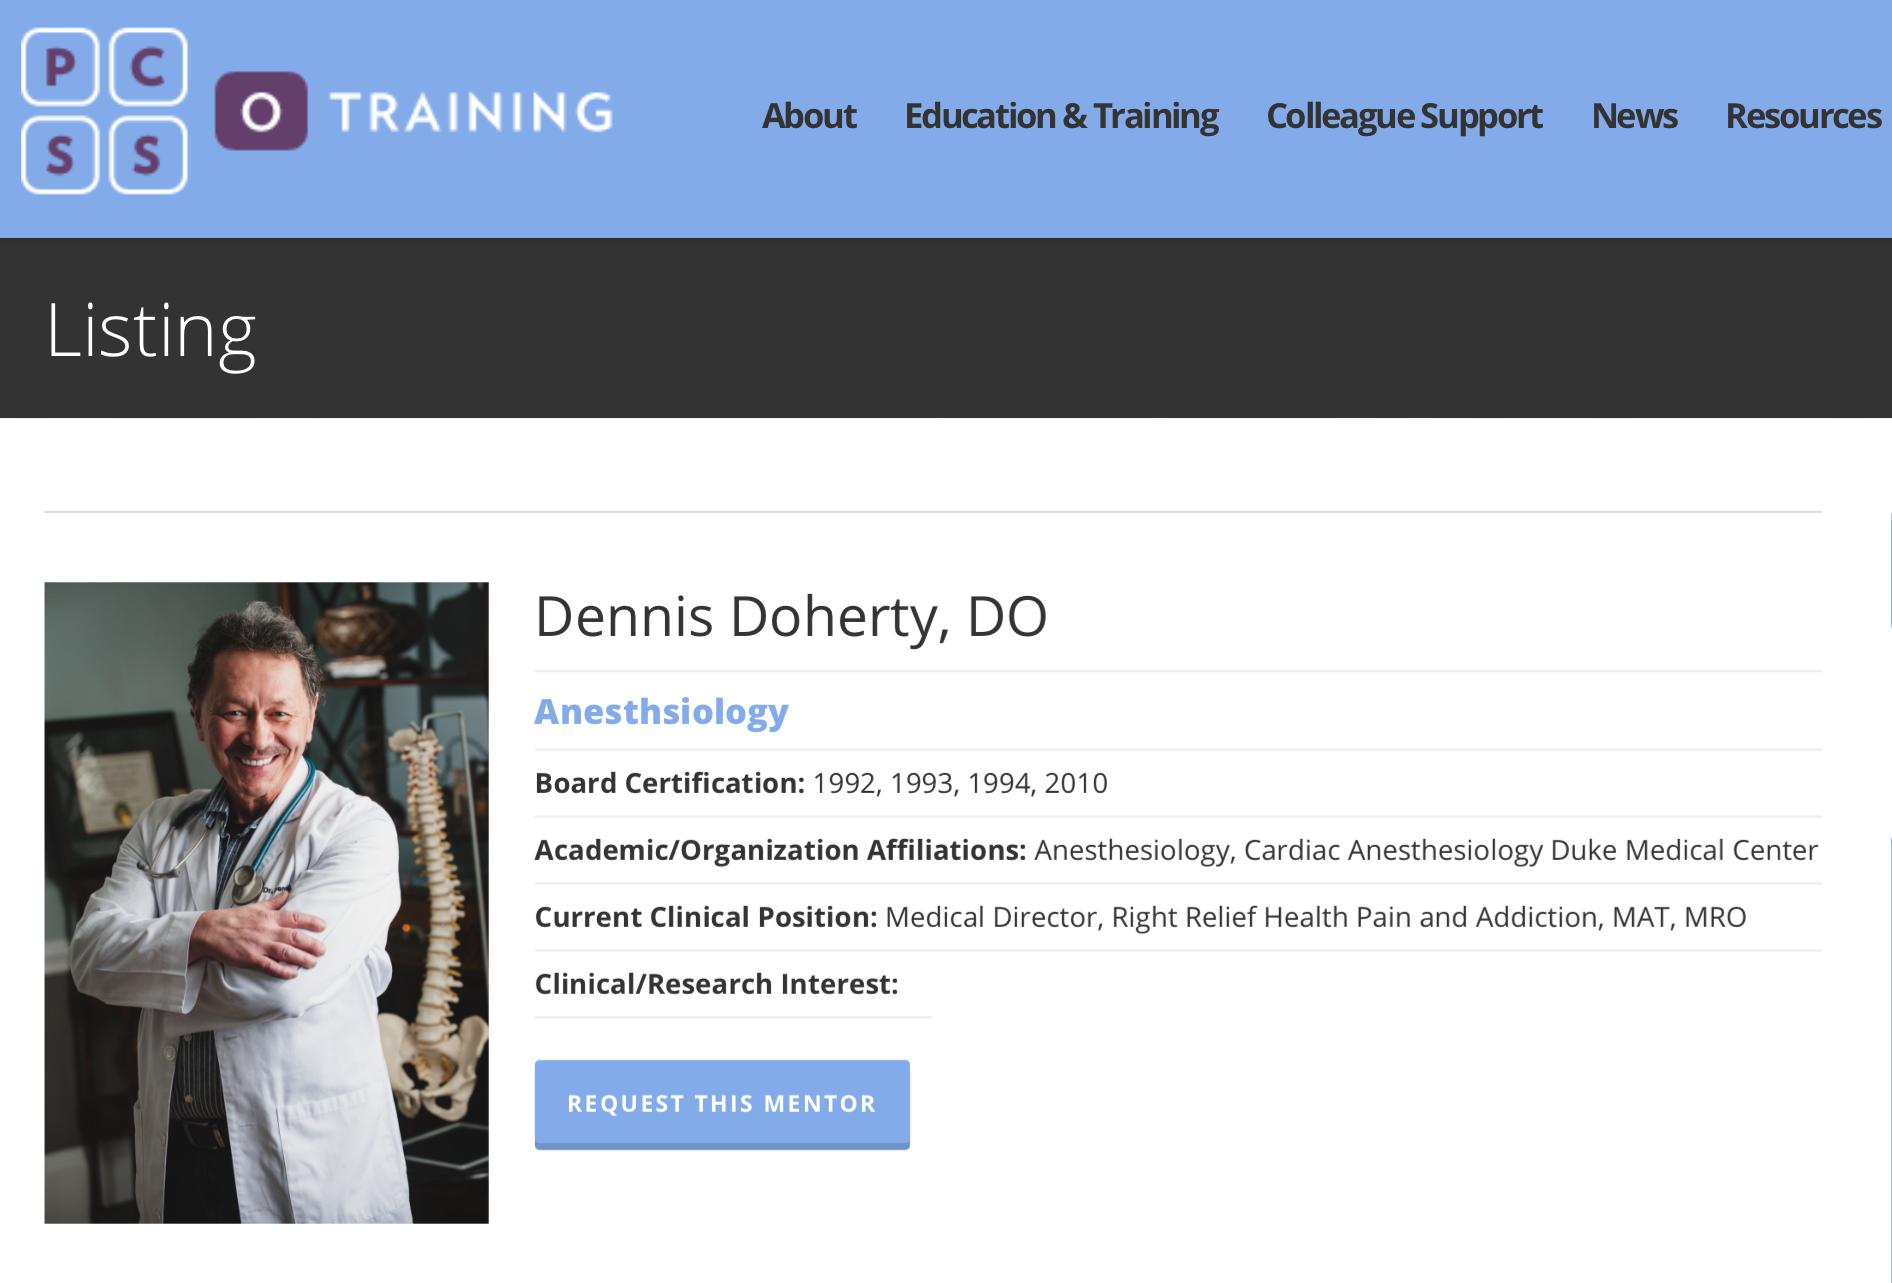 As of June 2017, Dr. Doherty joined a special group of physicians as he was selected to be a mentor for the PCSS-O Colleague support Program.    For more info on this great collaboration, supported by PCSS-O, the AMA, SAMHSA and many more, you can visit http://pcss-o.org/colleague-support/mentor-directory/